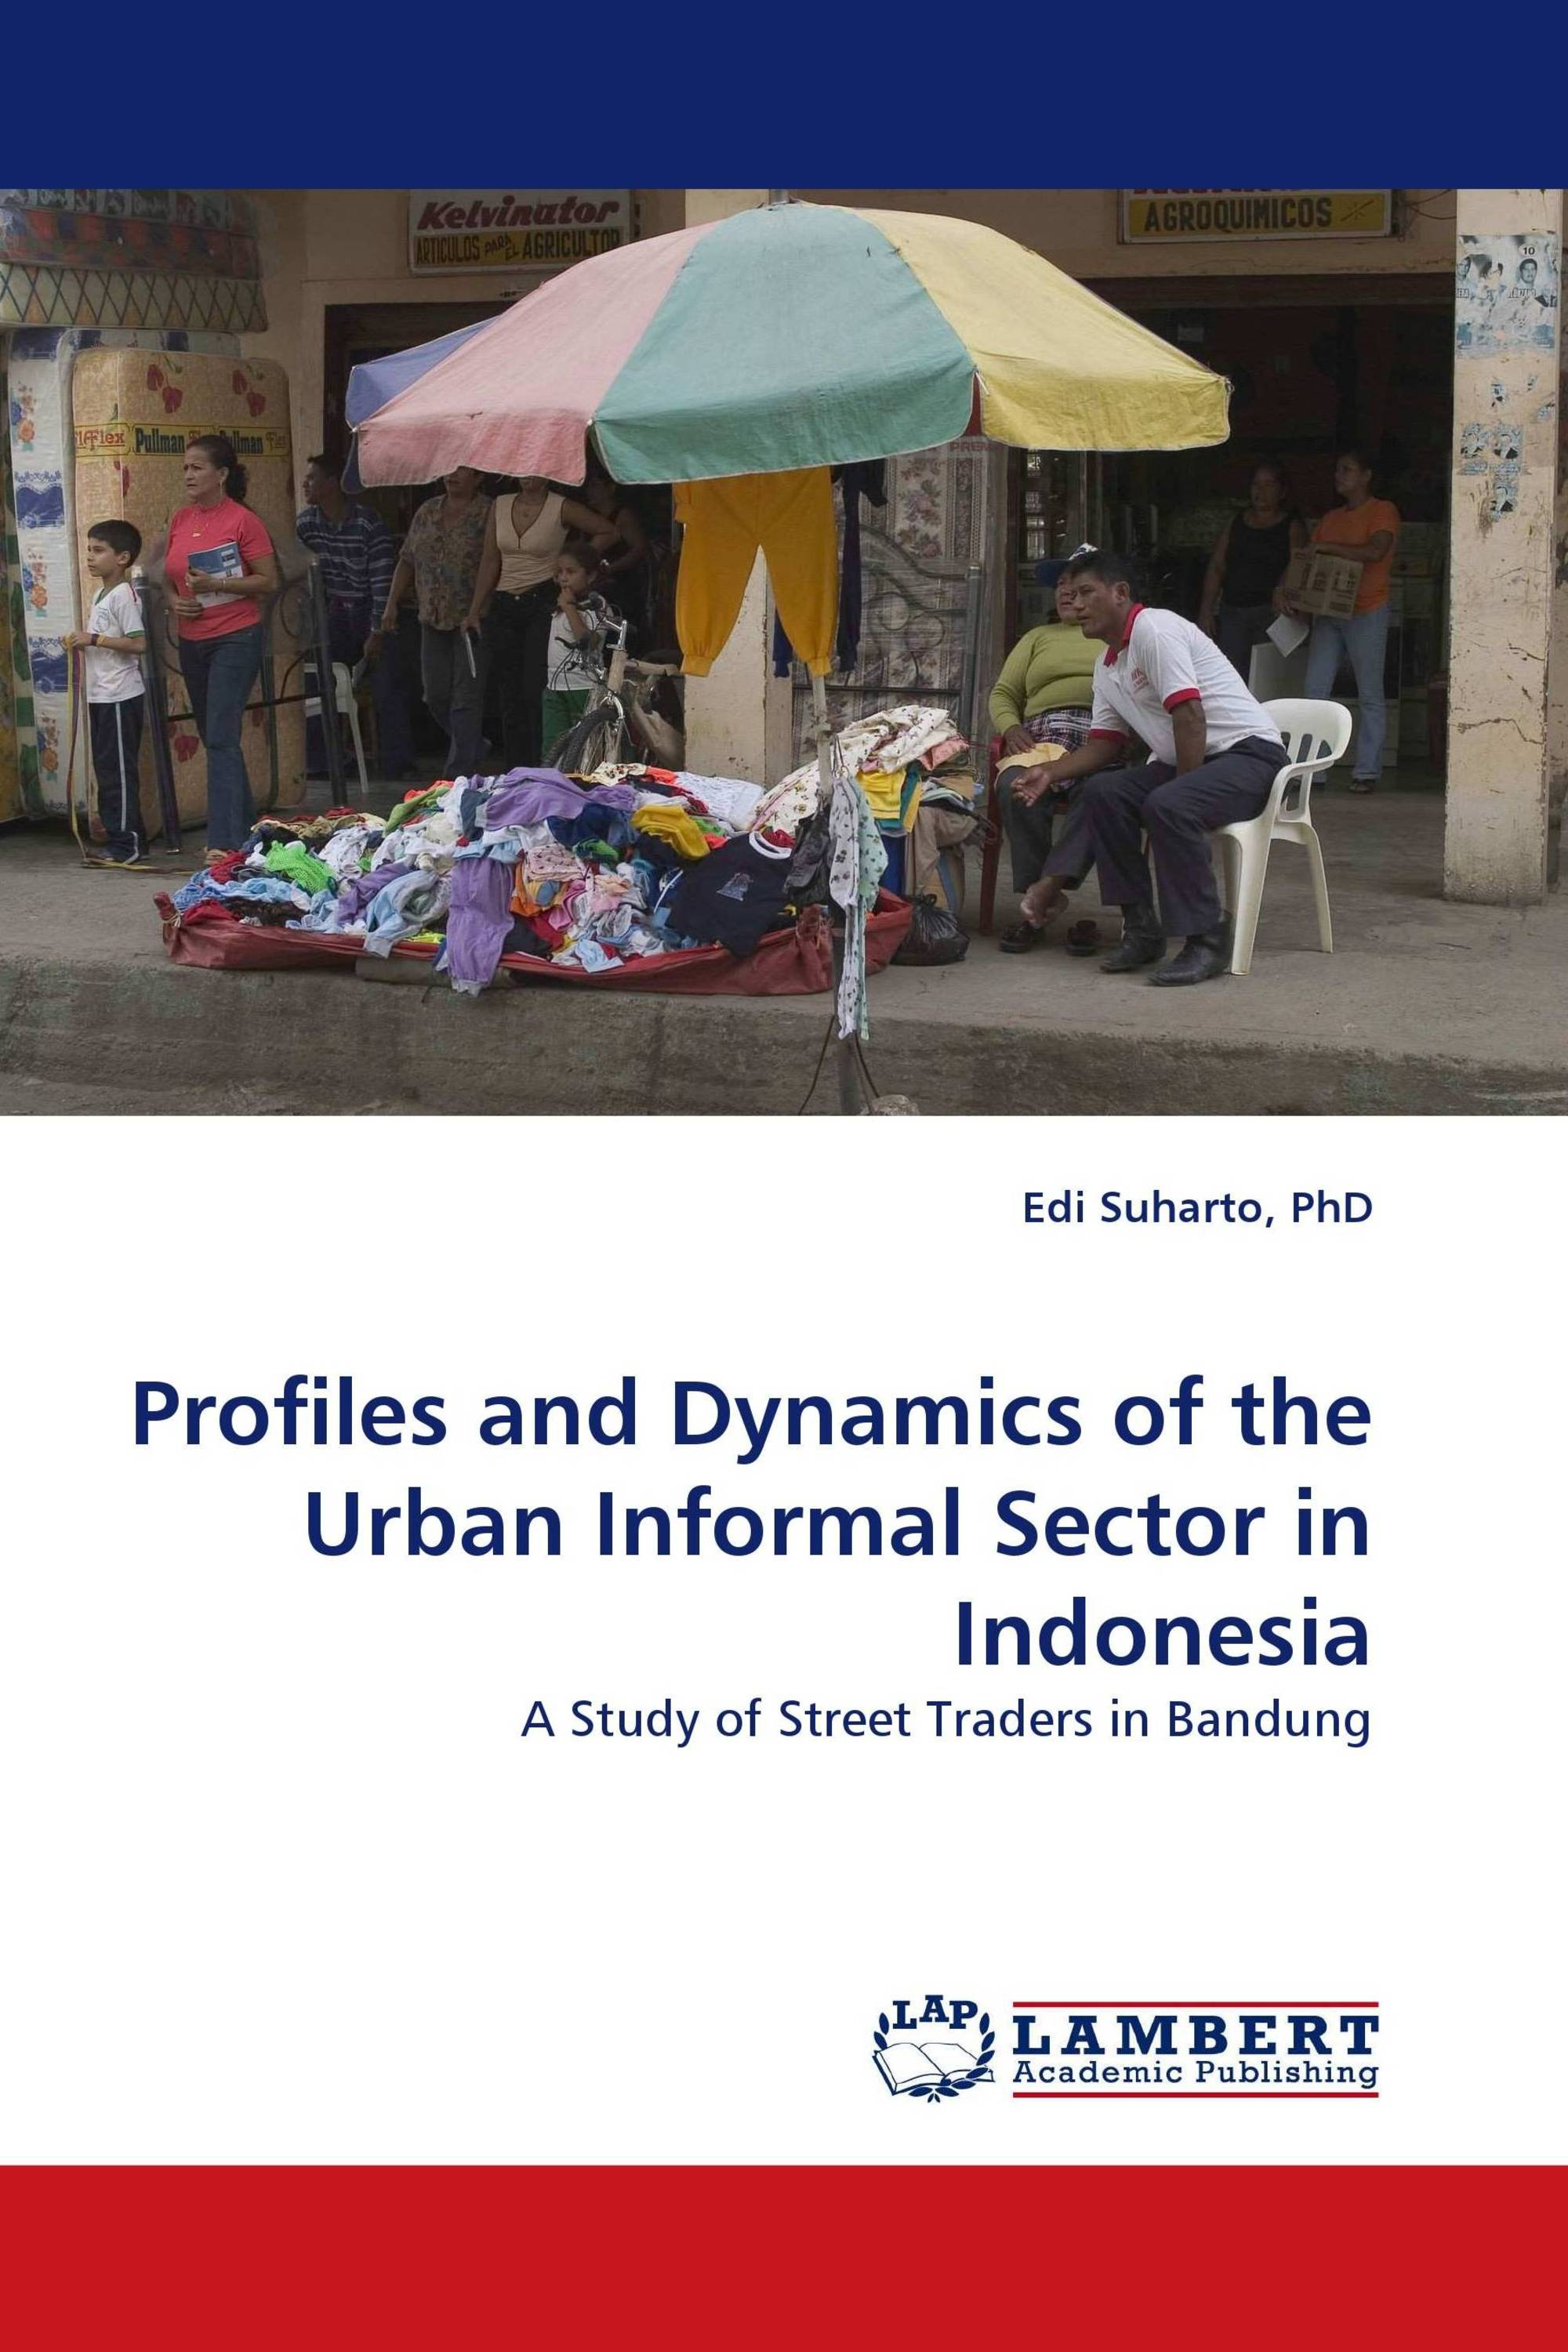 Profiles and Dynamics of the Urban Informal Sector in Indonesia